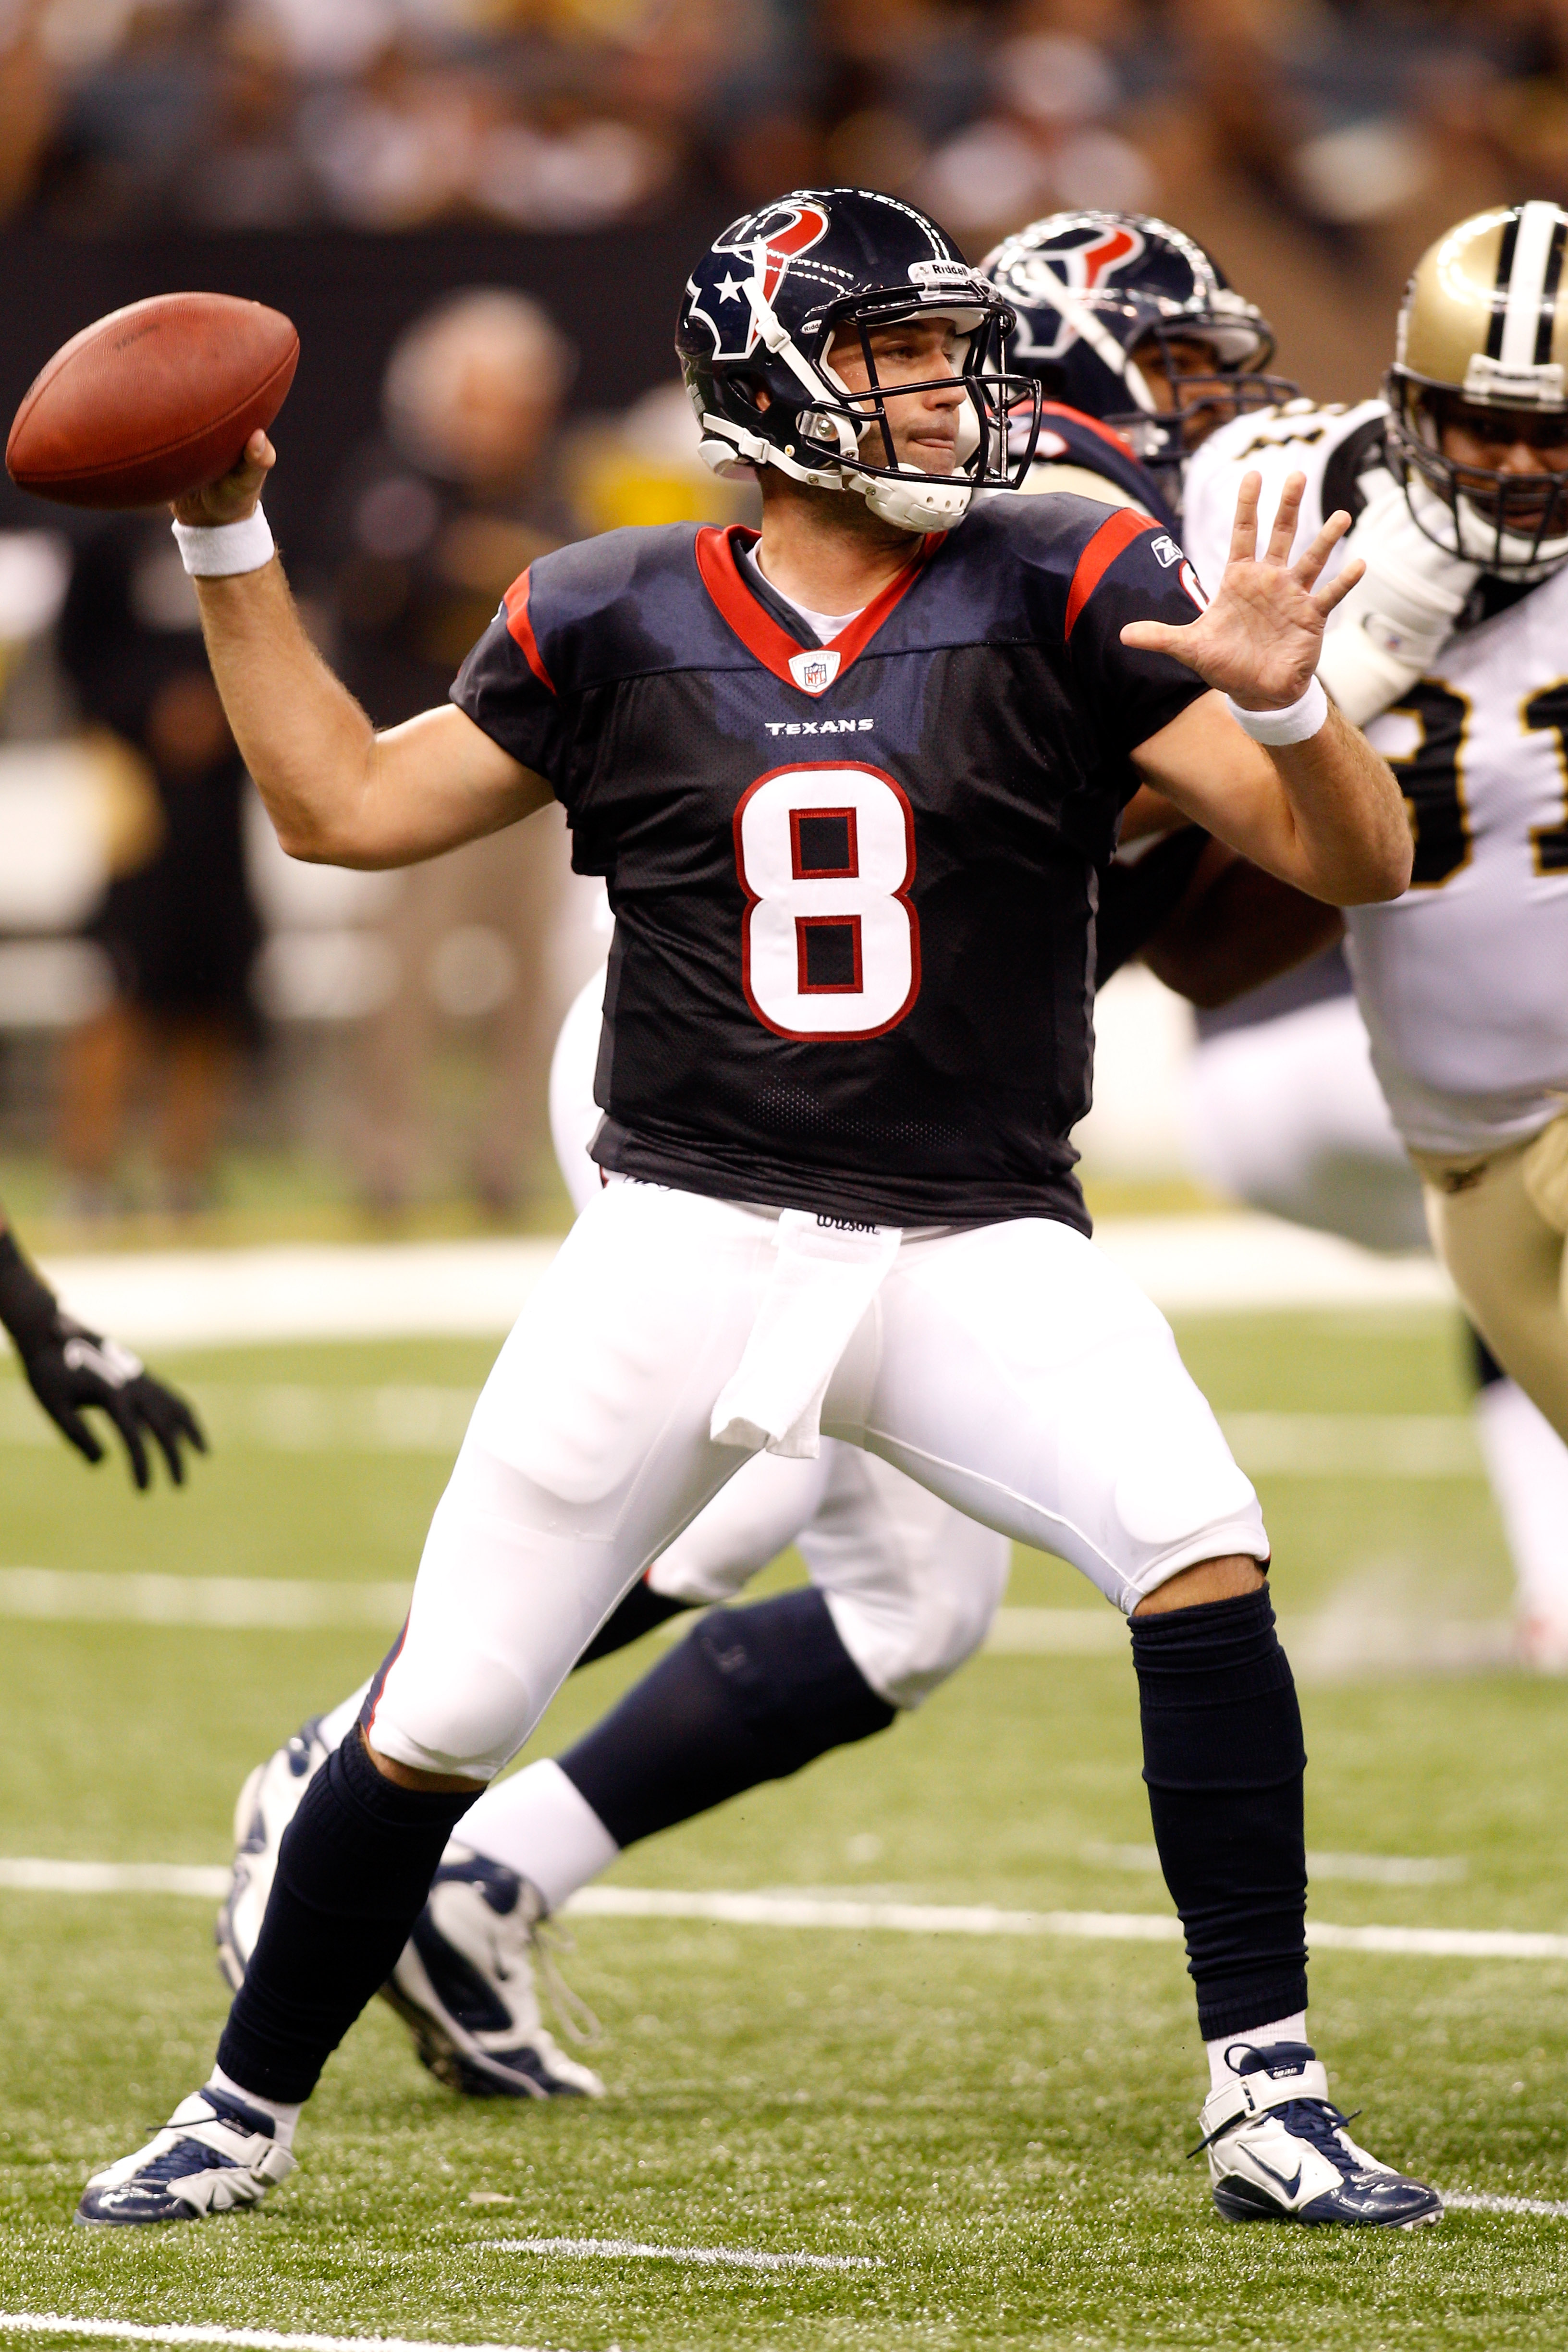 NEW ORLEANS - AUGUST 21:  Matt Schaub #8 of the Houston Texans in action during the game against the New Orleans Saints at the Louisiana Superdome on August 21, 2010 in New Orleans, Louisiana.  (Photo by Chris Graythen/Getty Images)